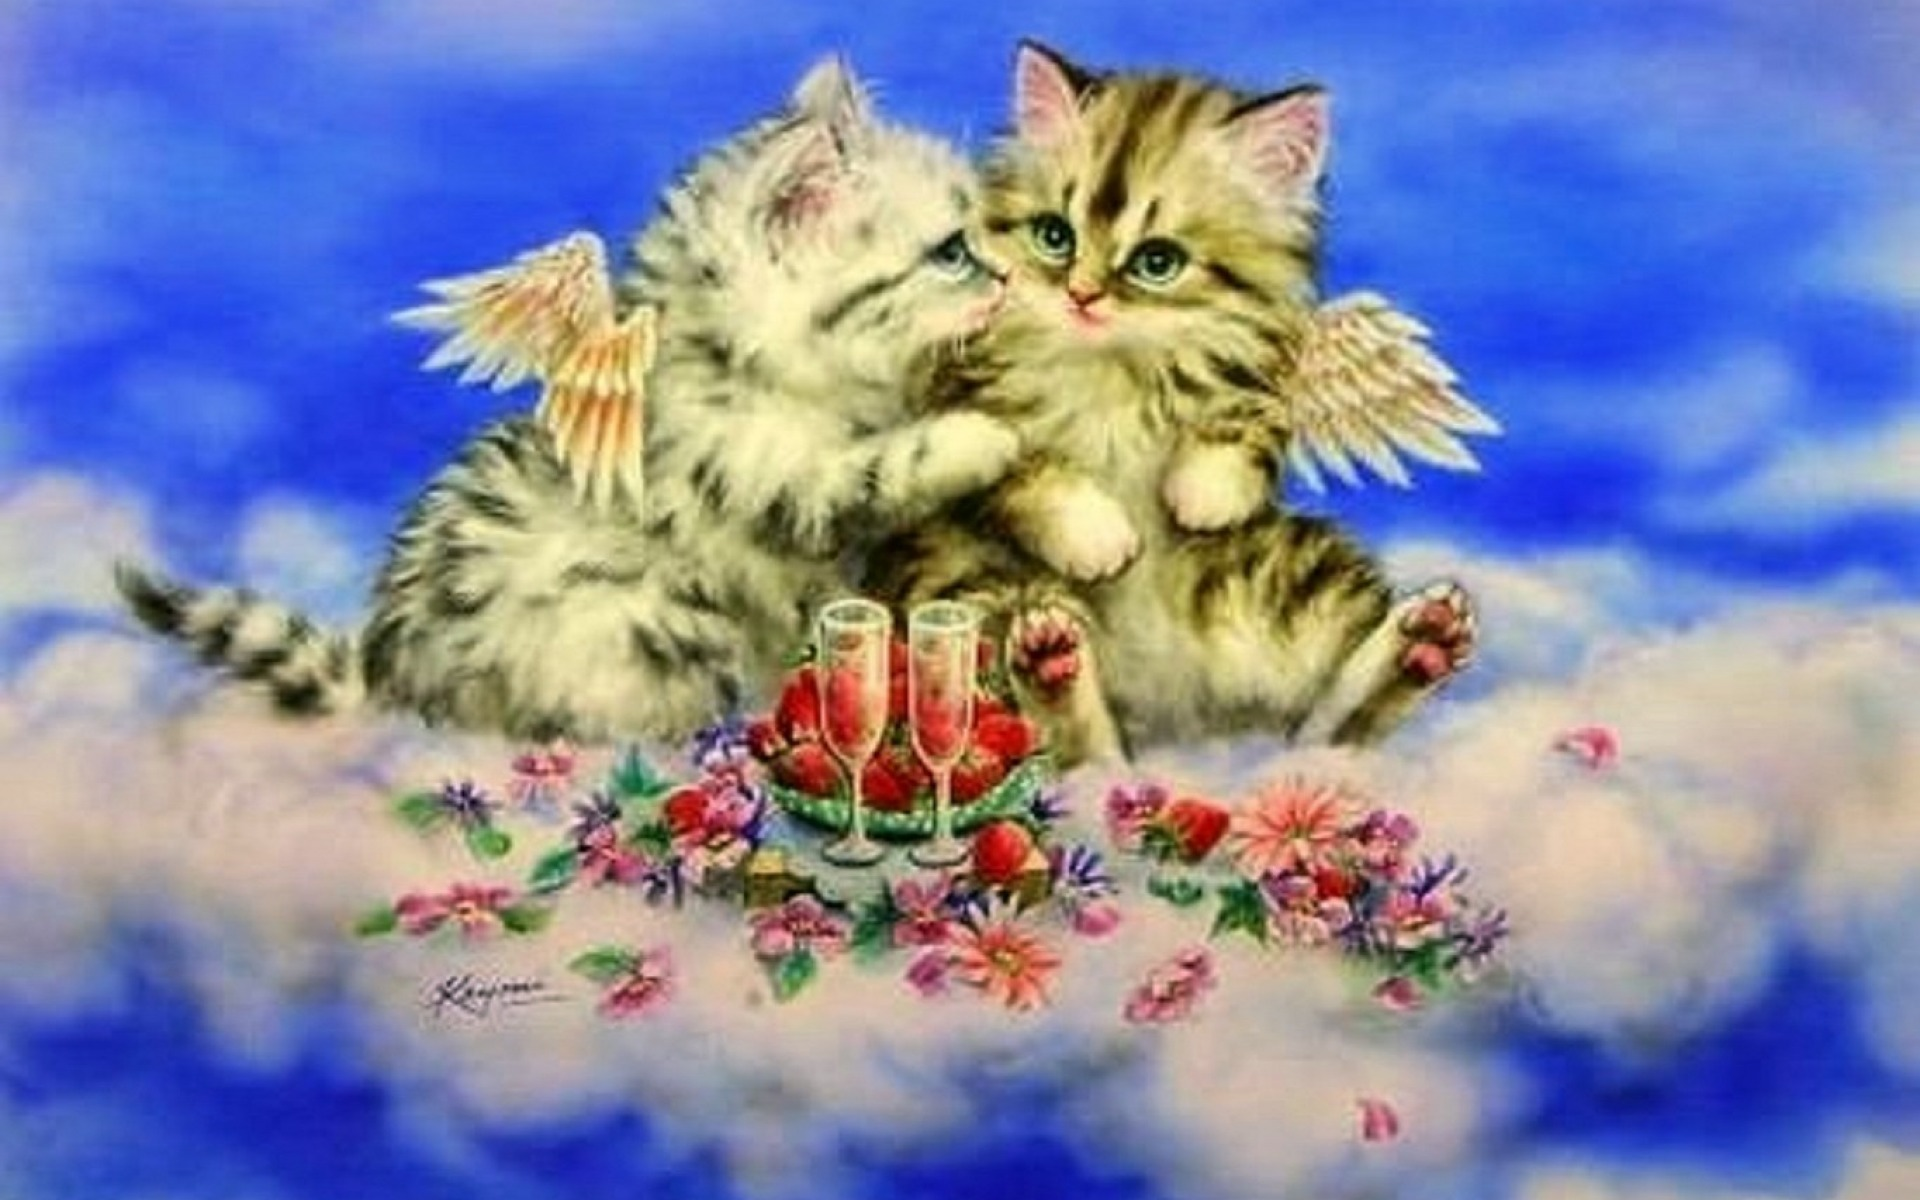 3d Fish Wallpaper Hd Cute Kittys Heavenly Romantic Wallpapers Cute Kittys